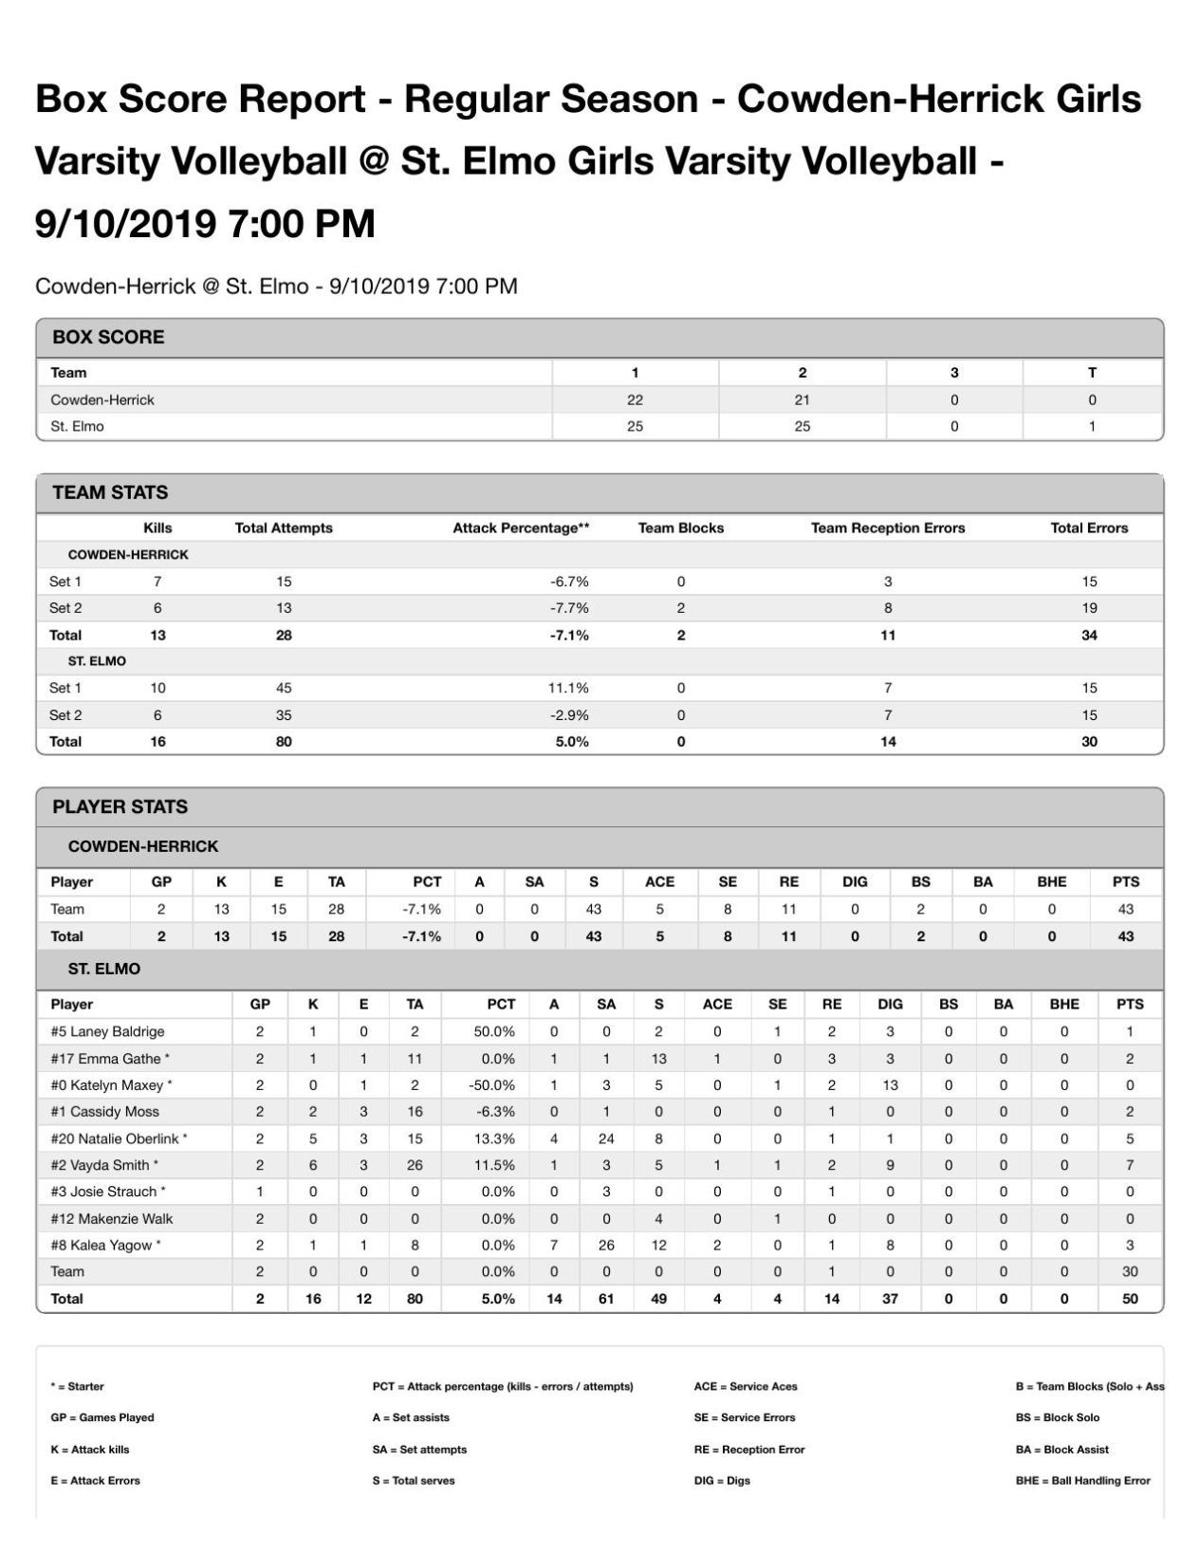 Volleyball: St. Elmo/Brownstown def. Cowden-Herrick/Beecher City 25-22, 25-21 (St. Elmo stats)